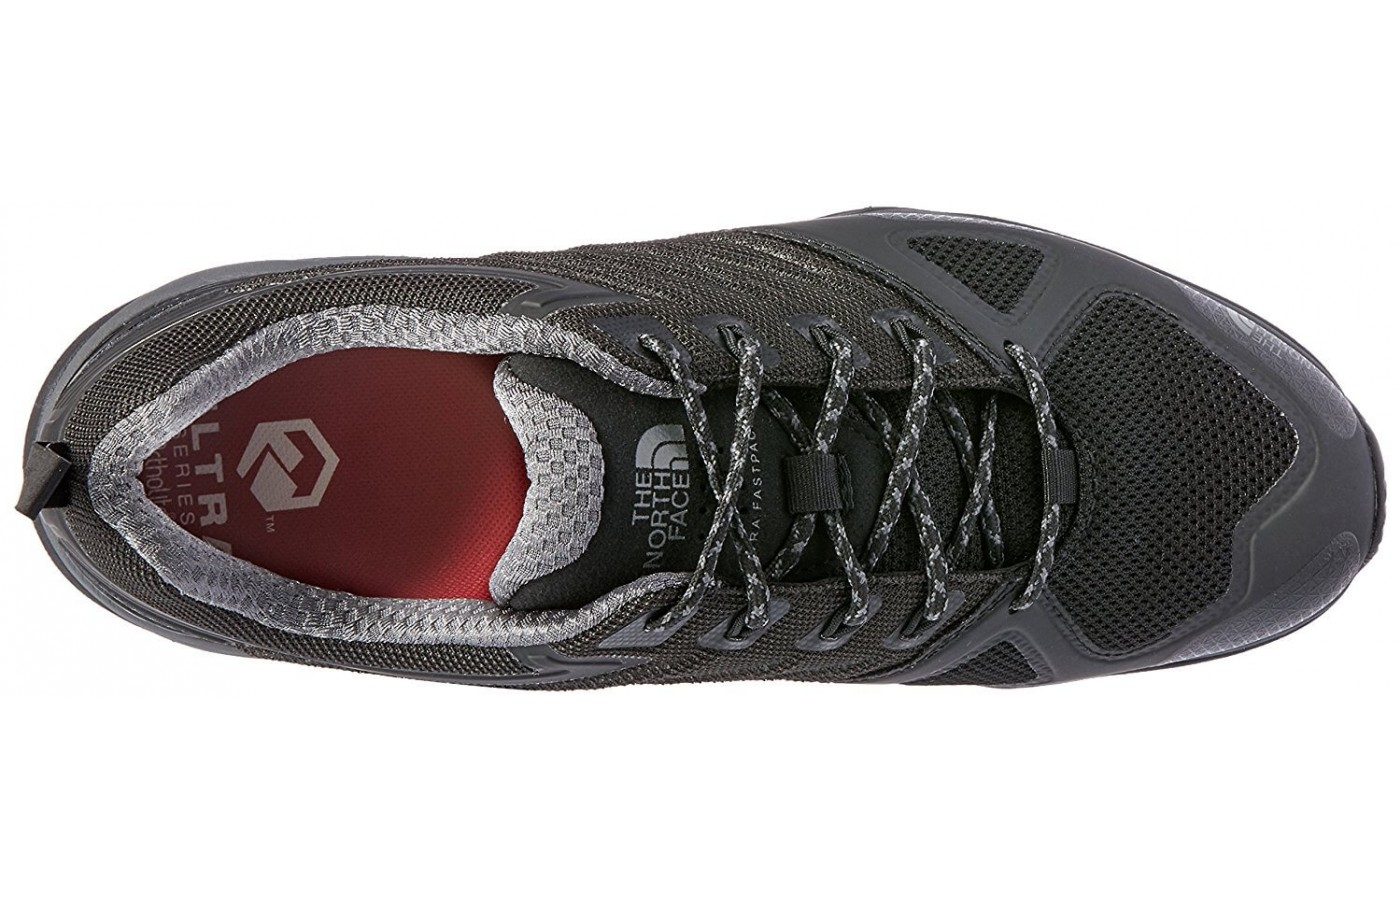 The The North Face Ultra Fastpack II GTX has a waterproof Gore-Tex membrane